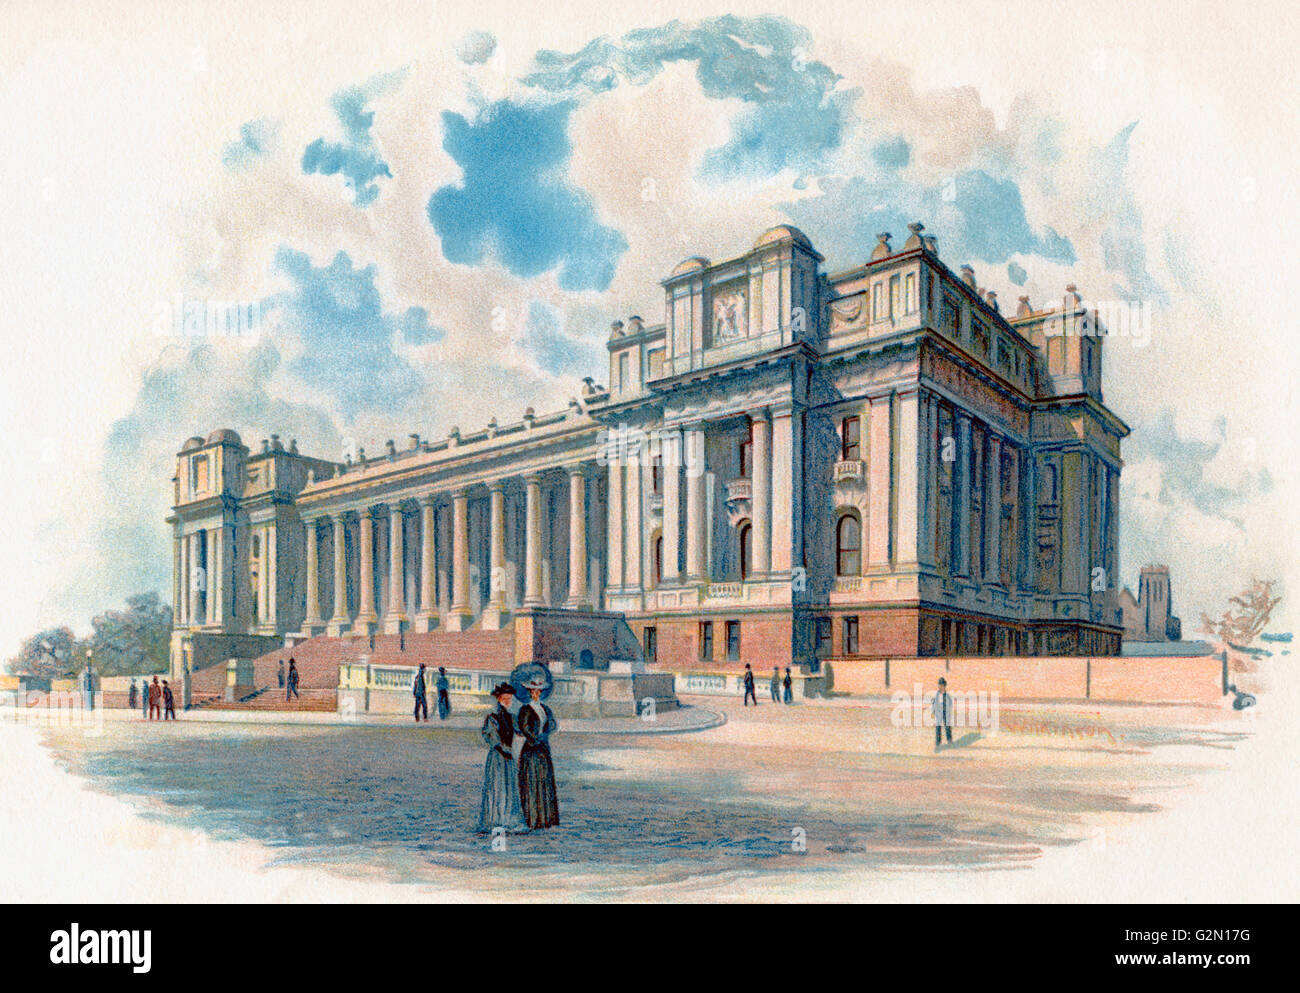 Parliament House, Melbourne, Australia in the 19th century. - Stock Image